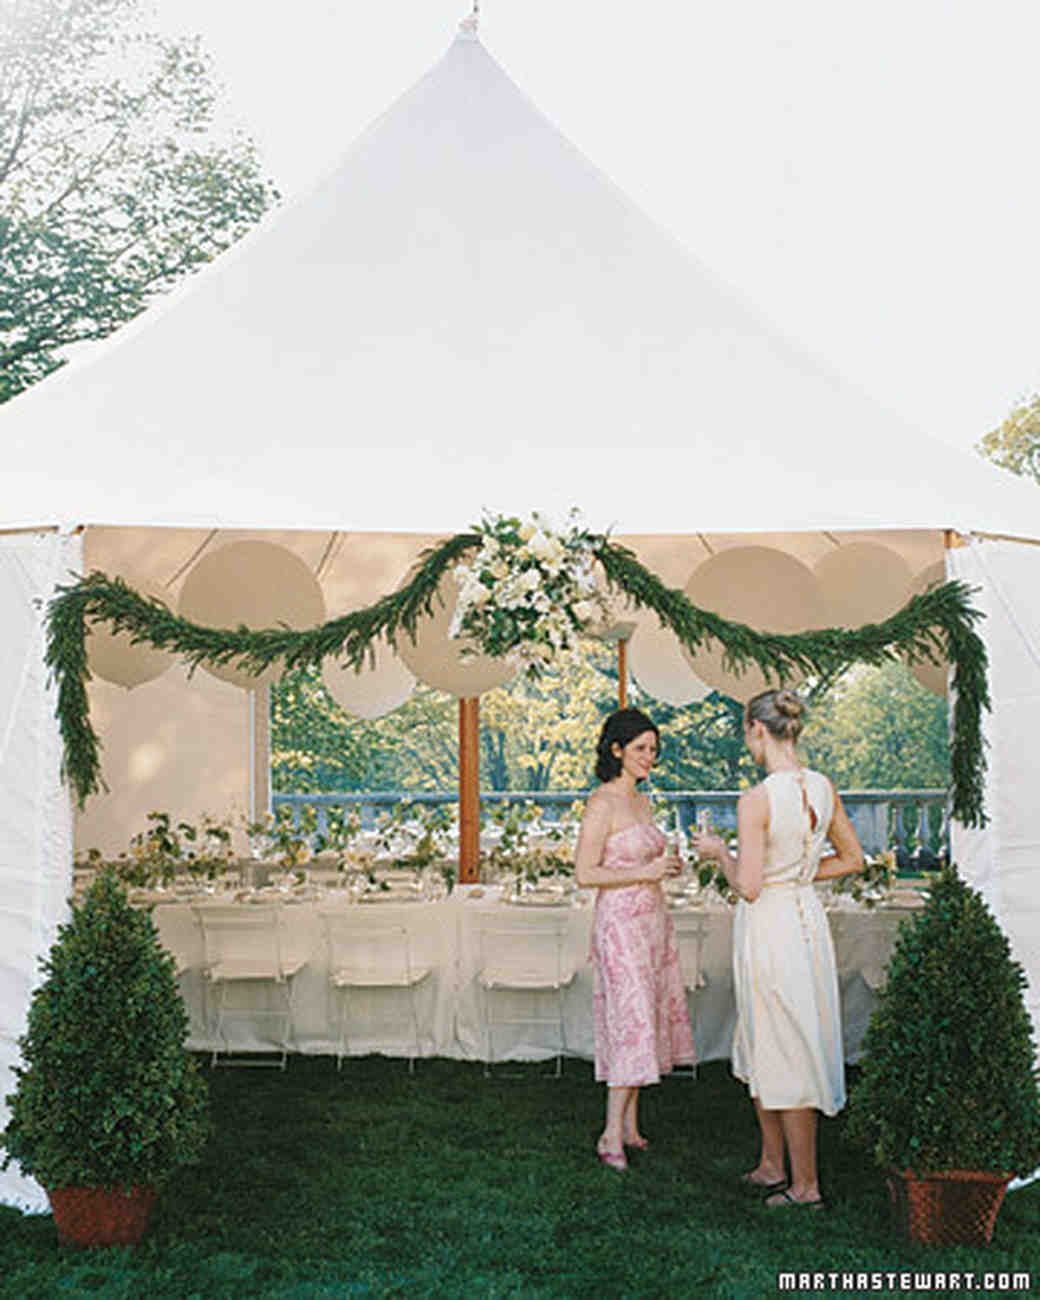 Summer Weddings: An Outdoor Occasion